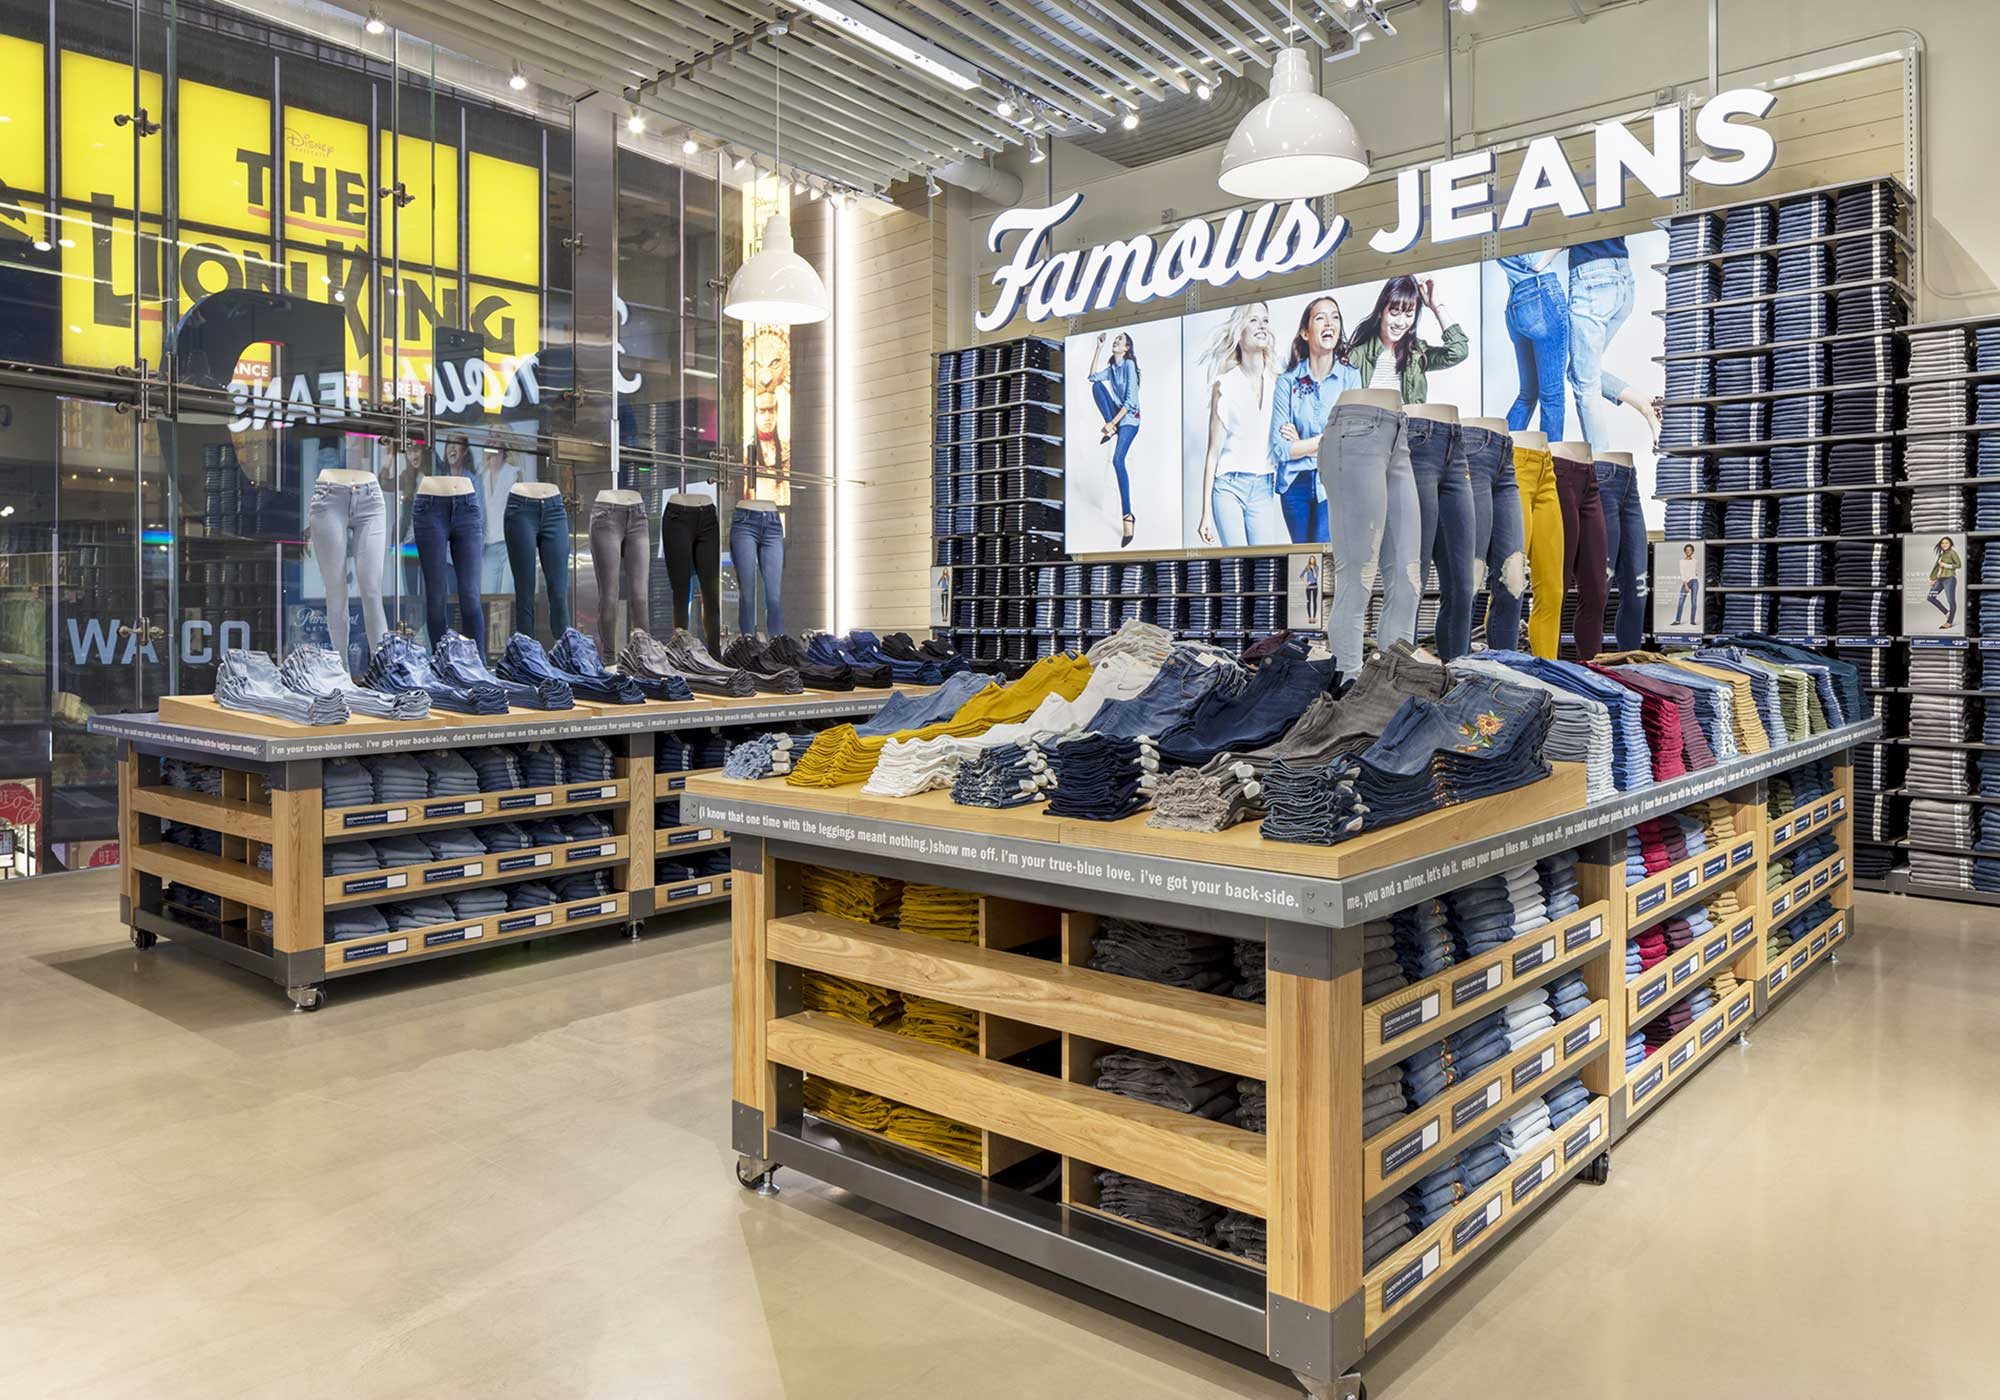 Jean display with neon sign